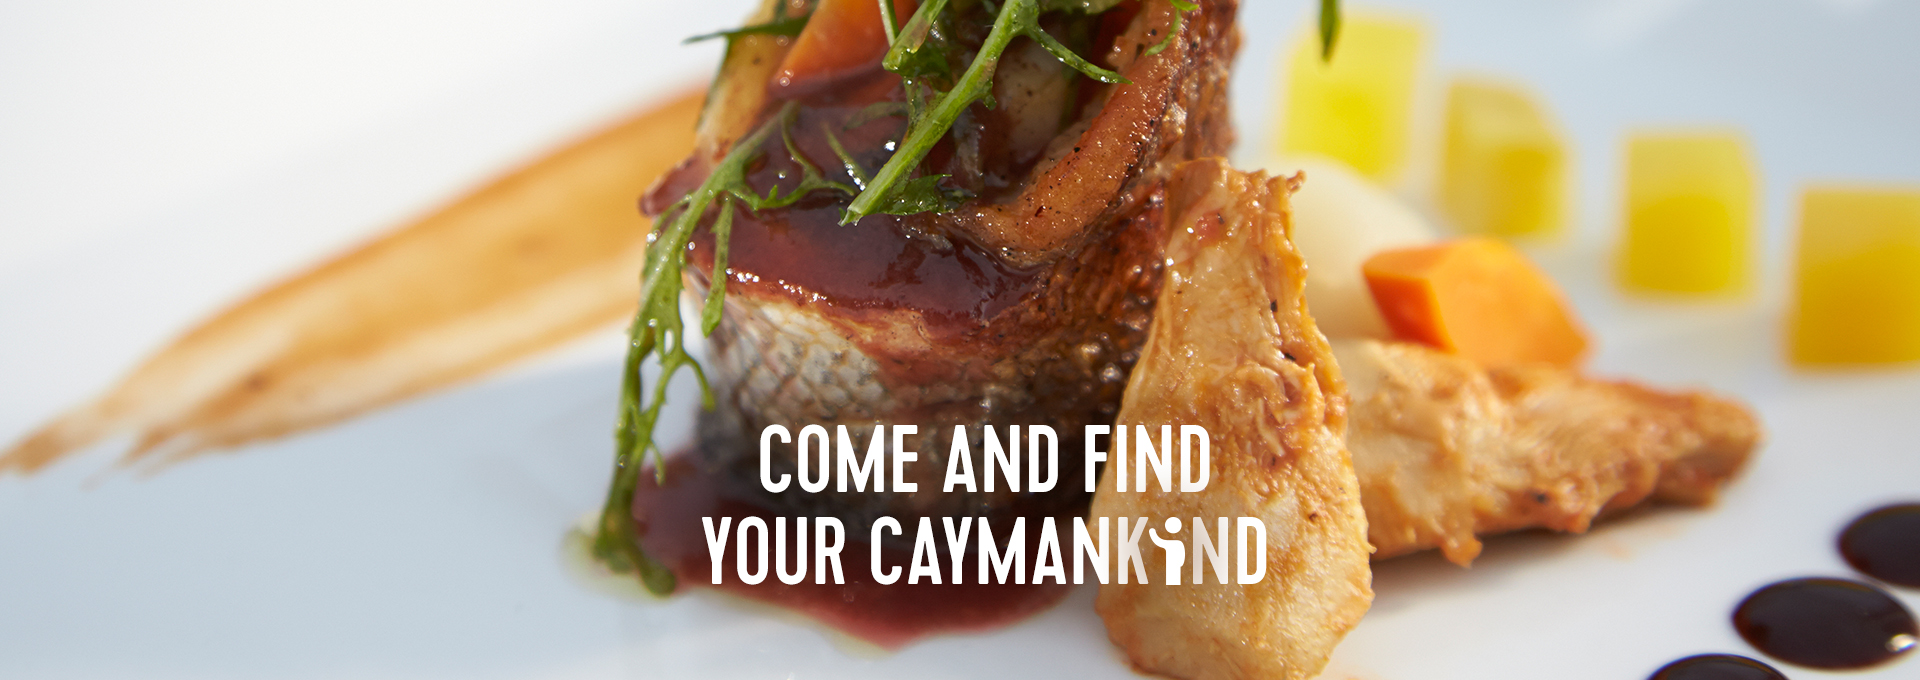 Come and find your Caymankind